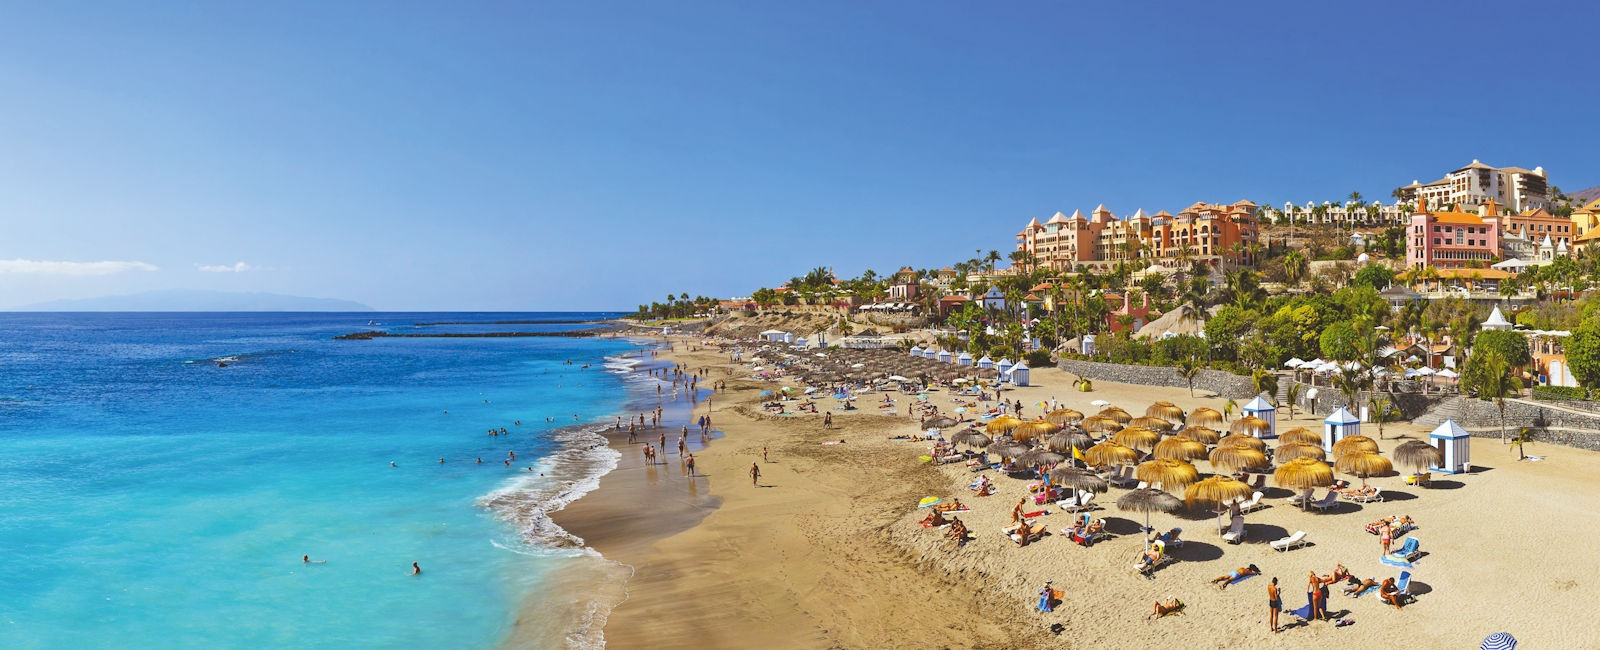 Luxury Playa de Las Americas Holidays